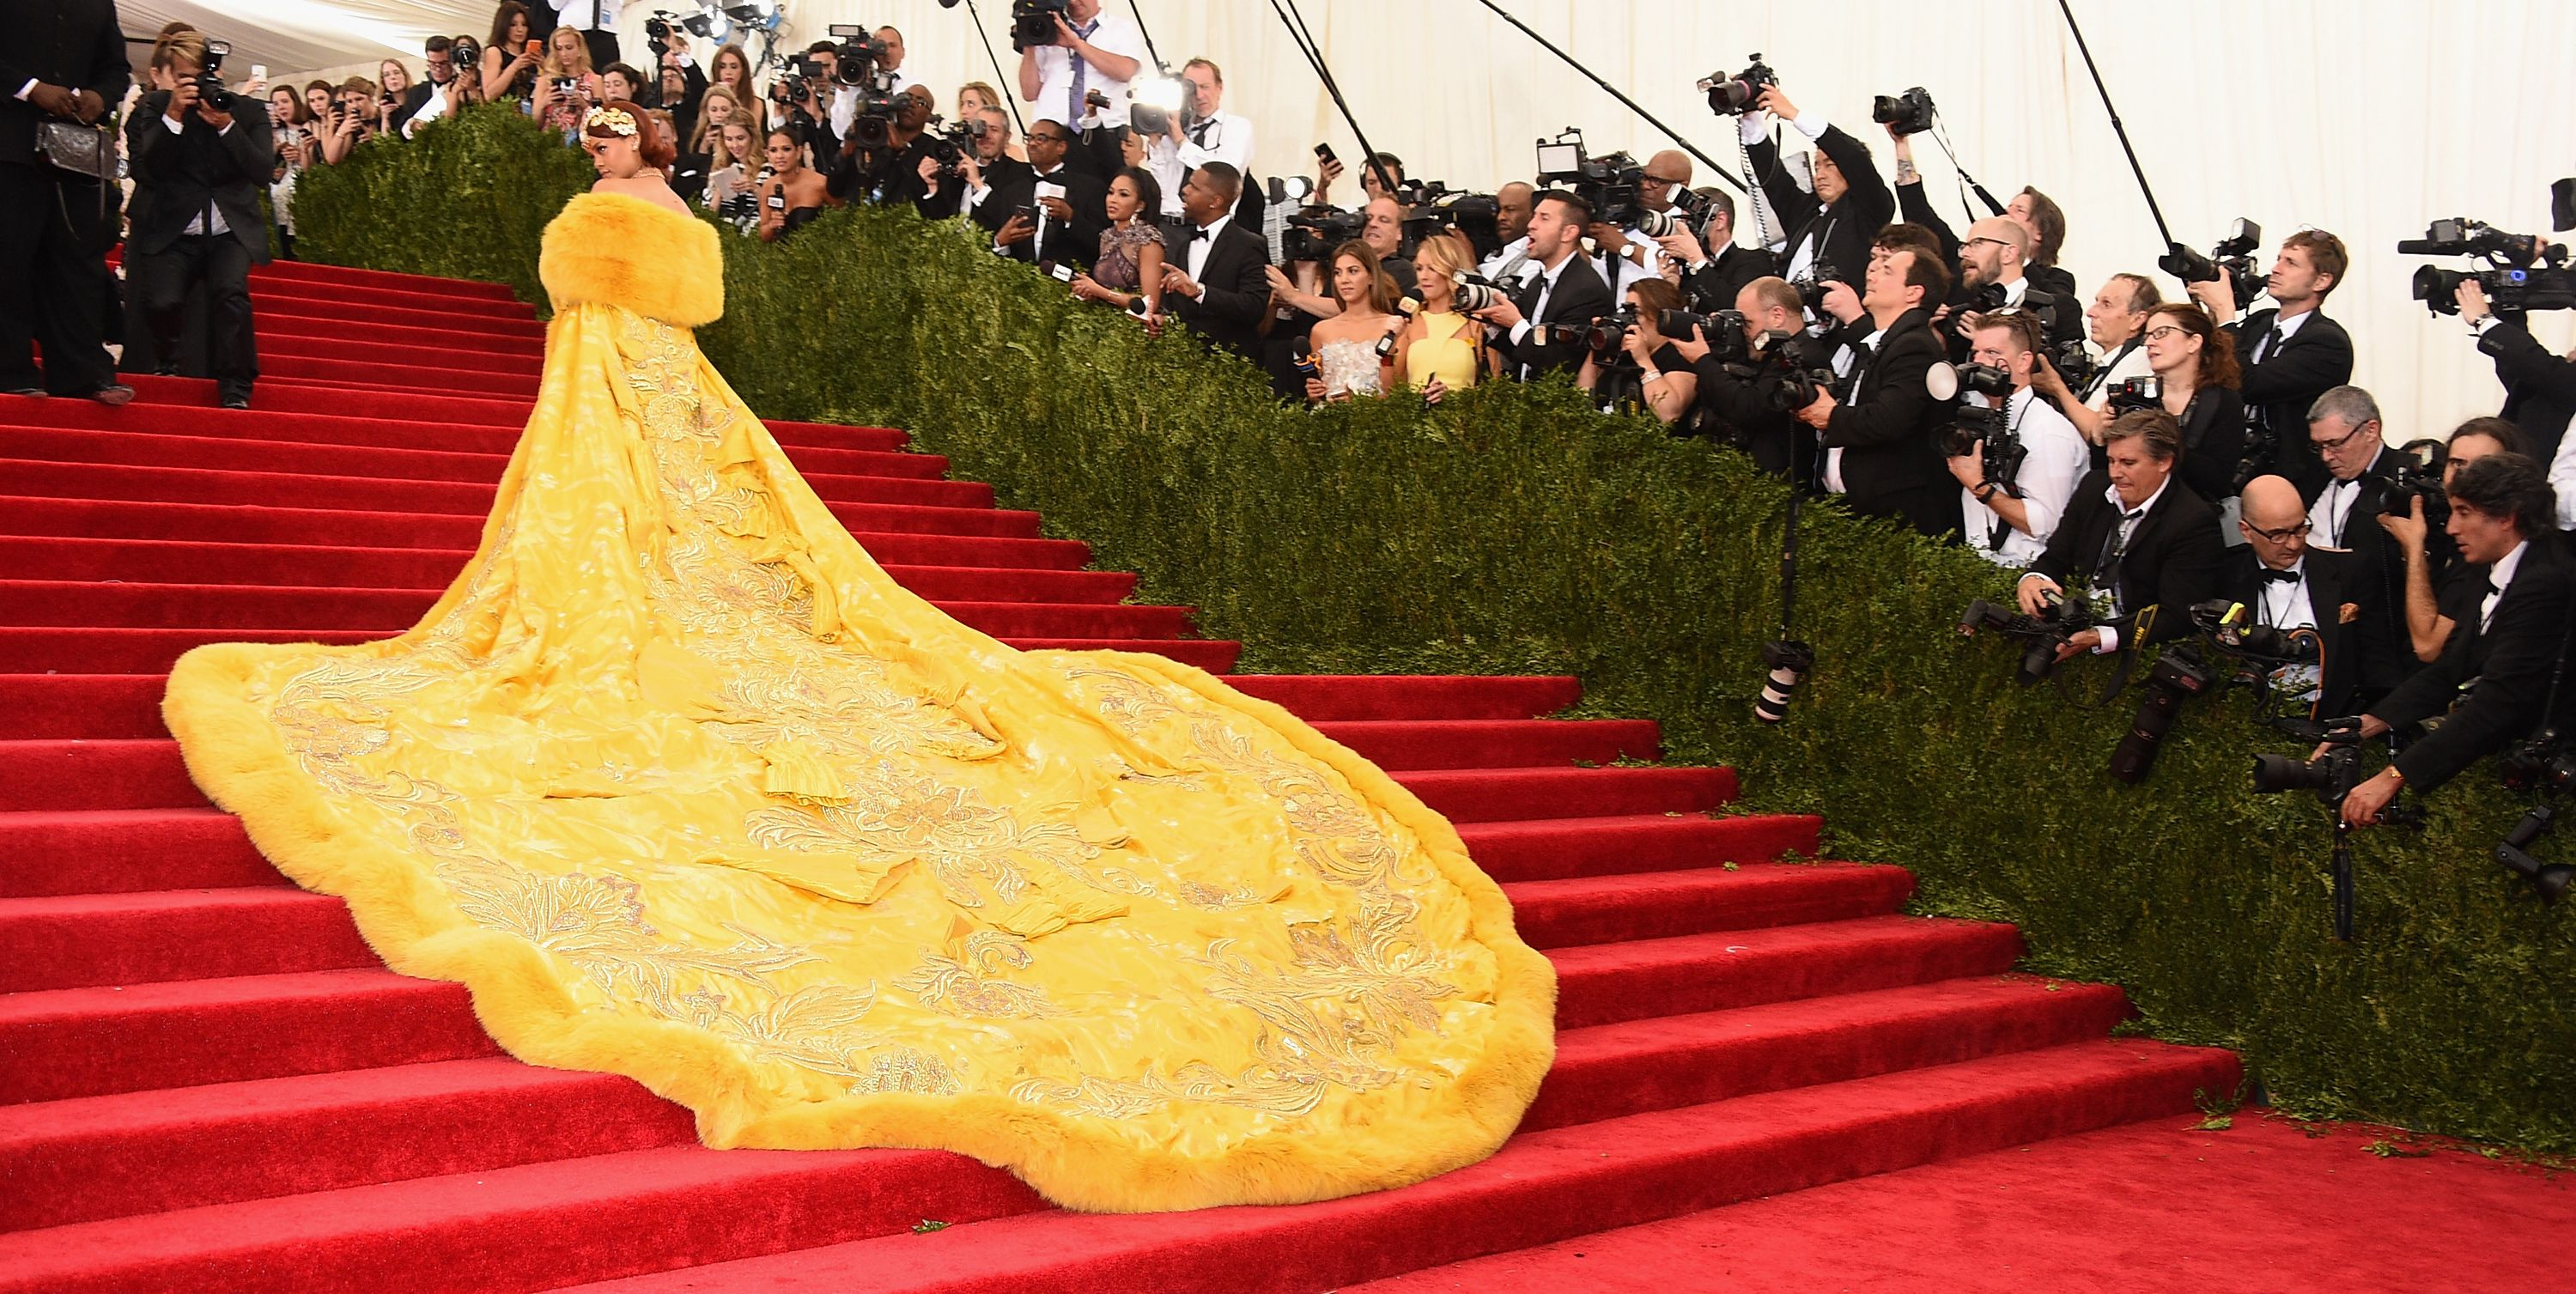 Many of fashion's most notable and daring moments have taken place at the Met Gala , a star-studded annual event that benefits the Costume Institute at the Metropolitan Museum of Art. This year's fête, held on Monday, May 6, will mark the opening of Camp: Notes on Fashion, with Harry Styles, Serena Williams, and the one and only Lady Gaga.